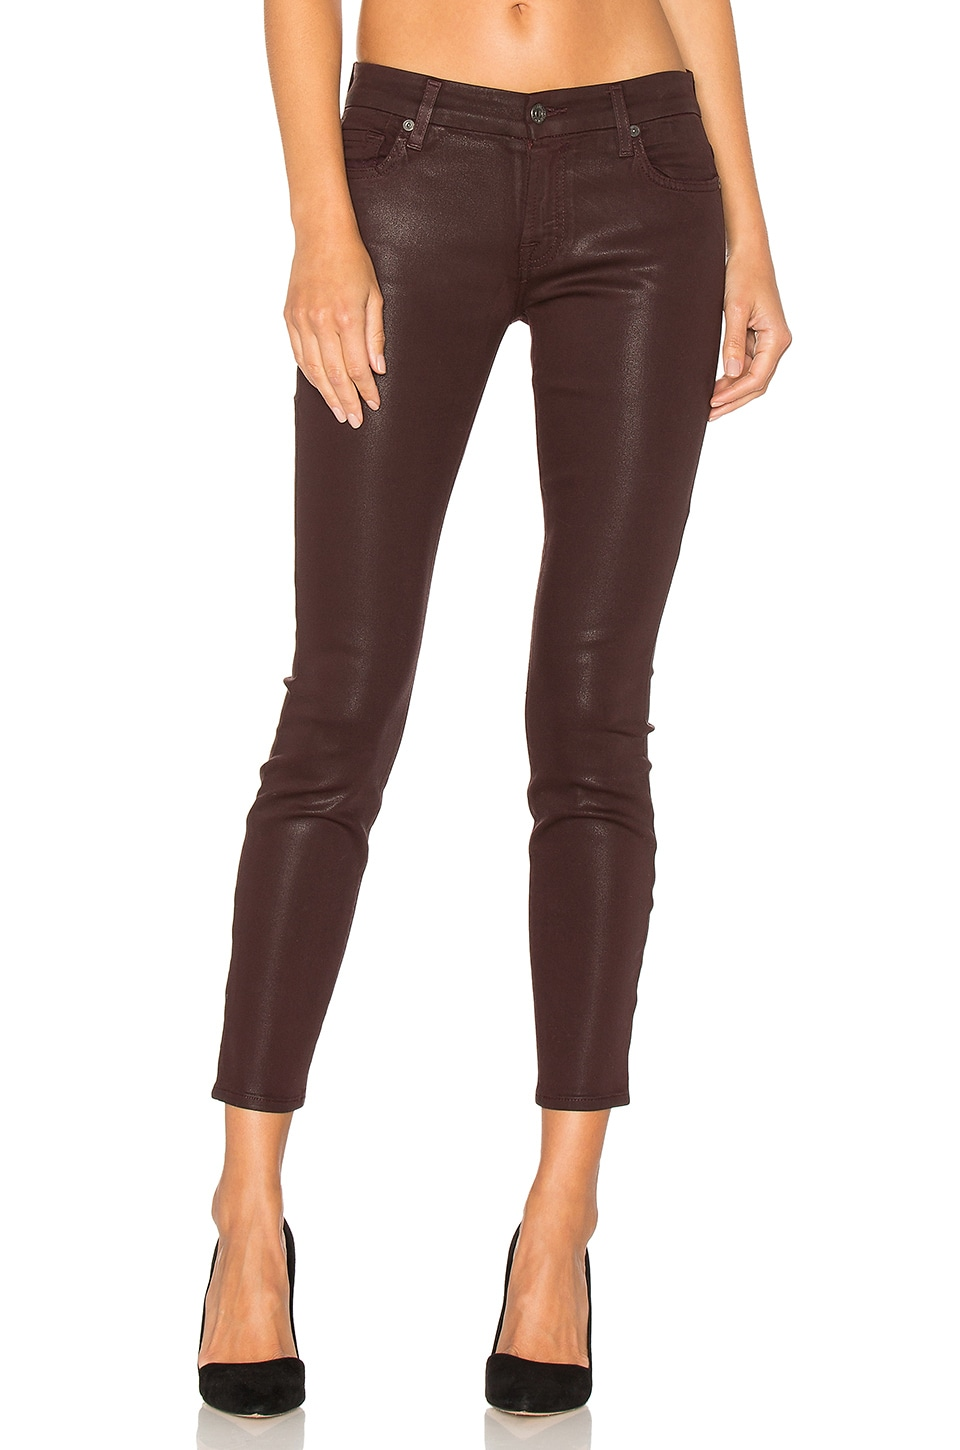 7 For All Mankind The Ankle Skinny in Plum Distressed